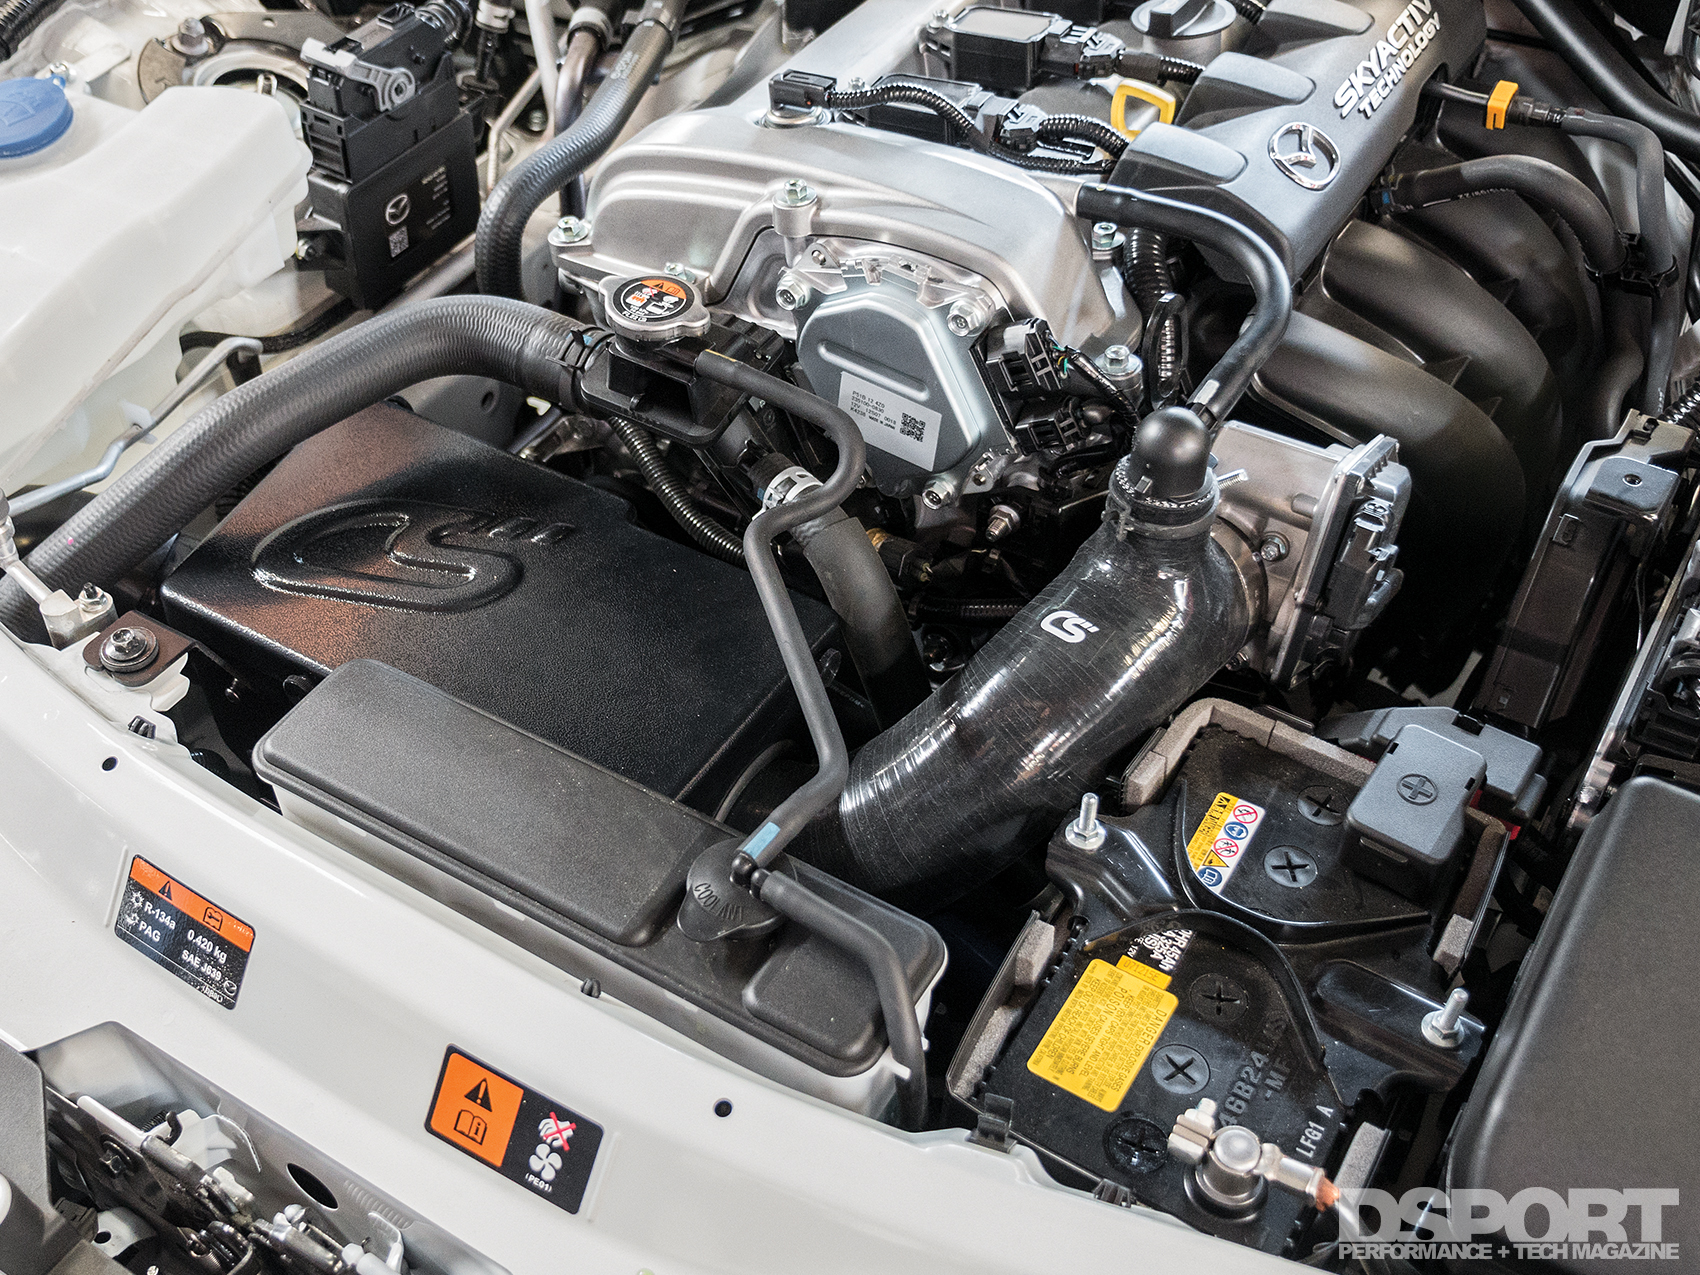 hight resolution of muffler and intake for mx 5 miata